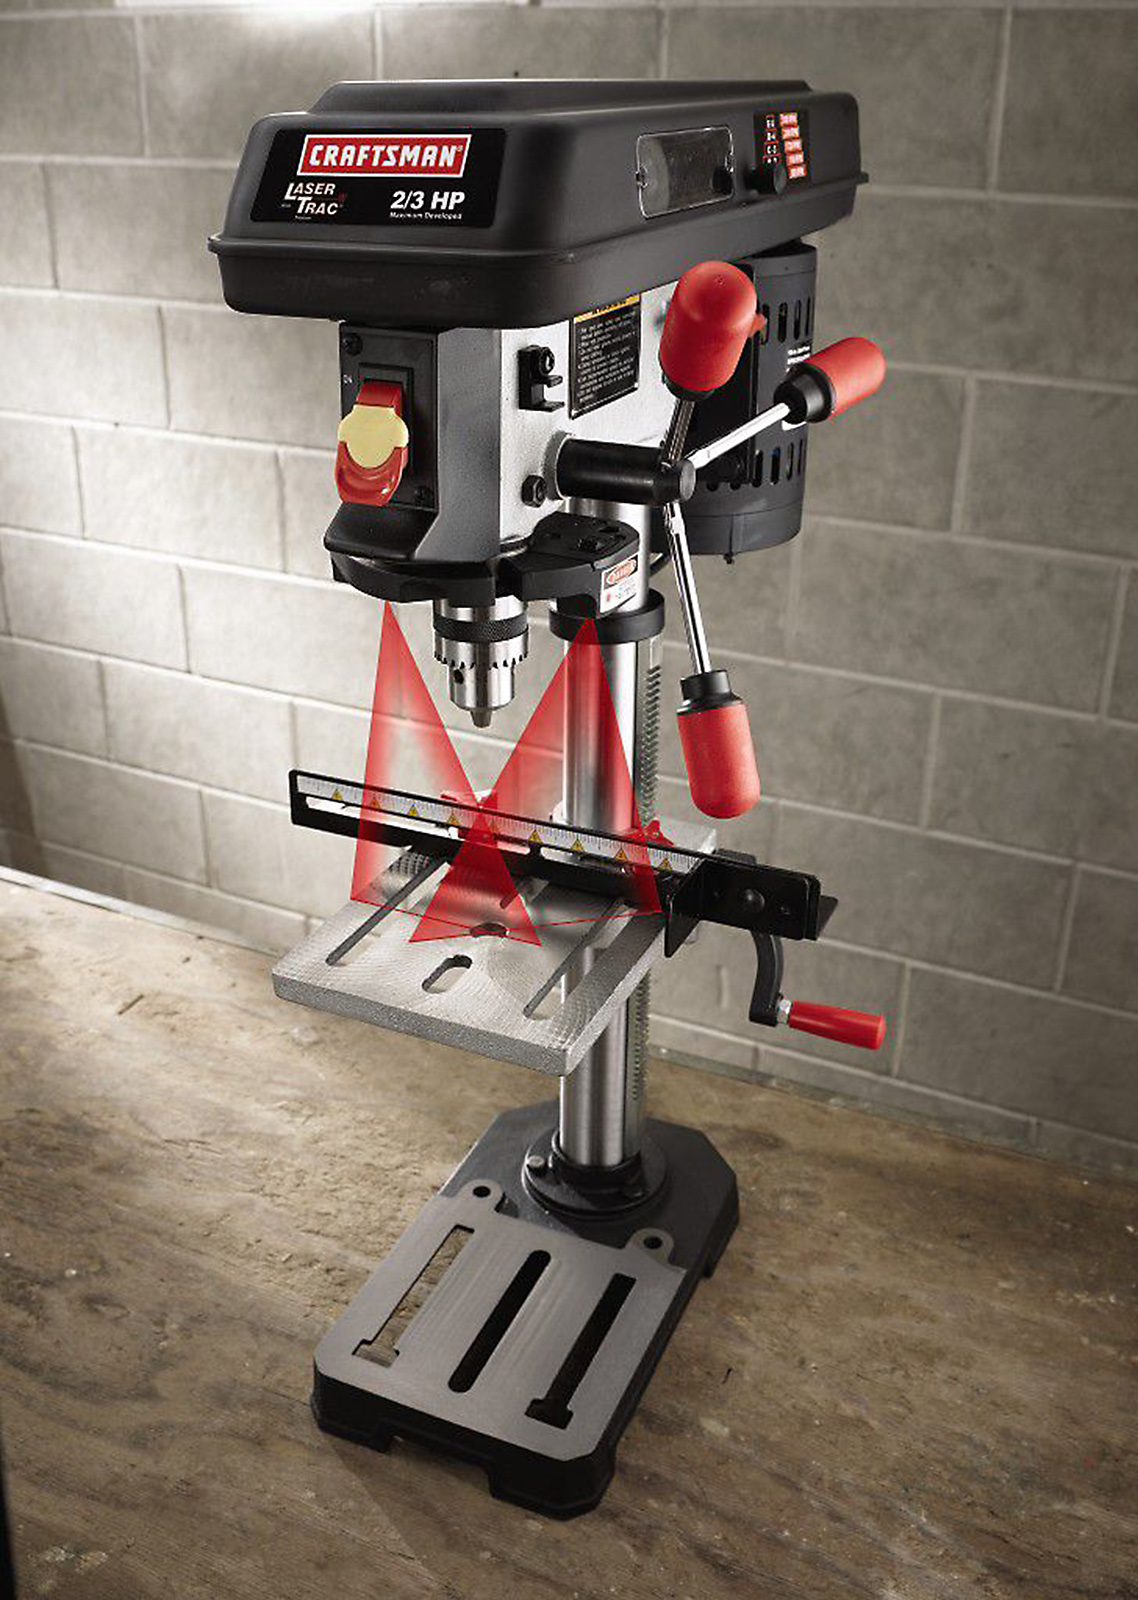 "Craftsman 10"" Bench Drill Press with Laser Trac® (21900)"